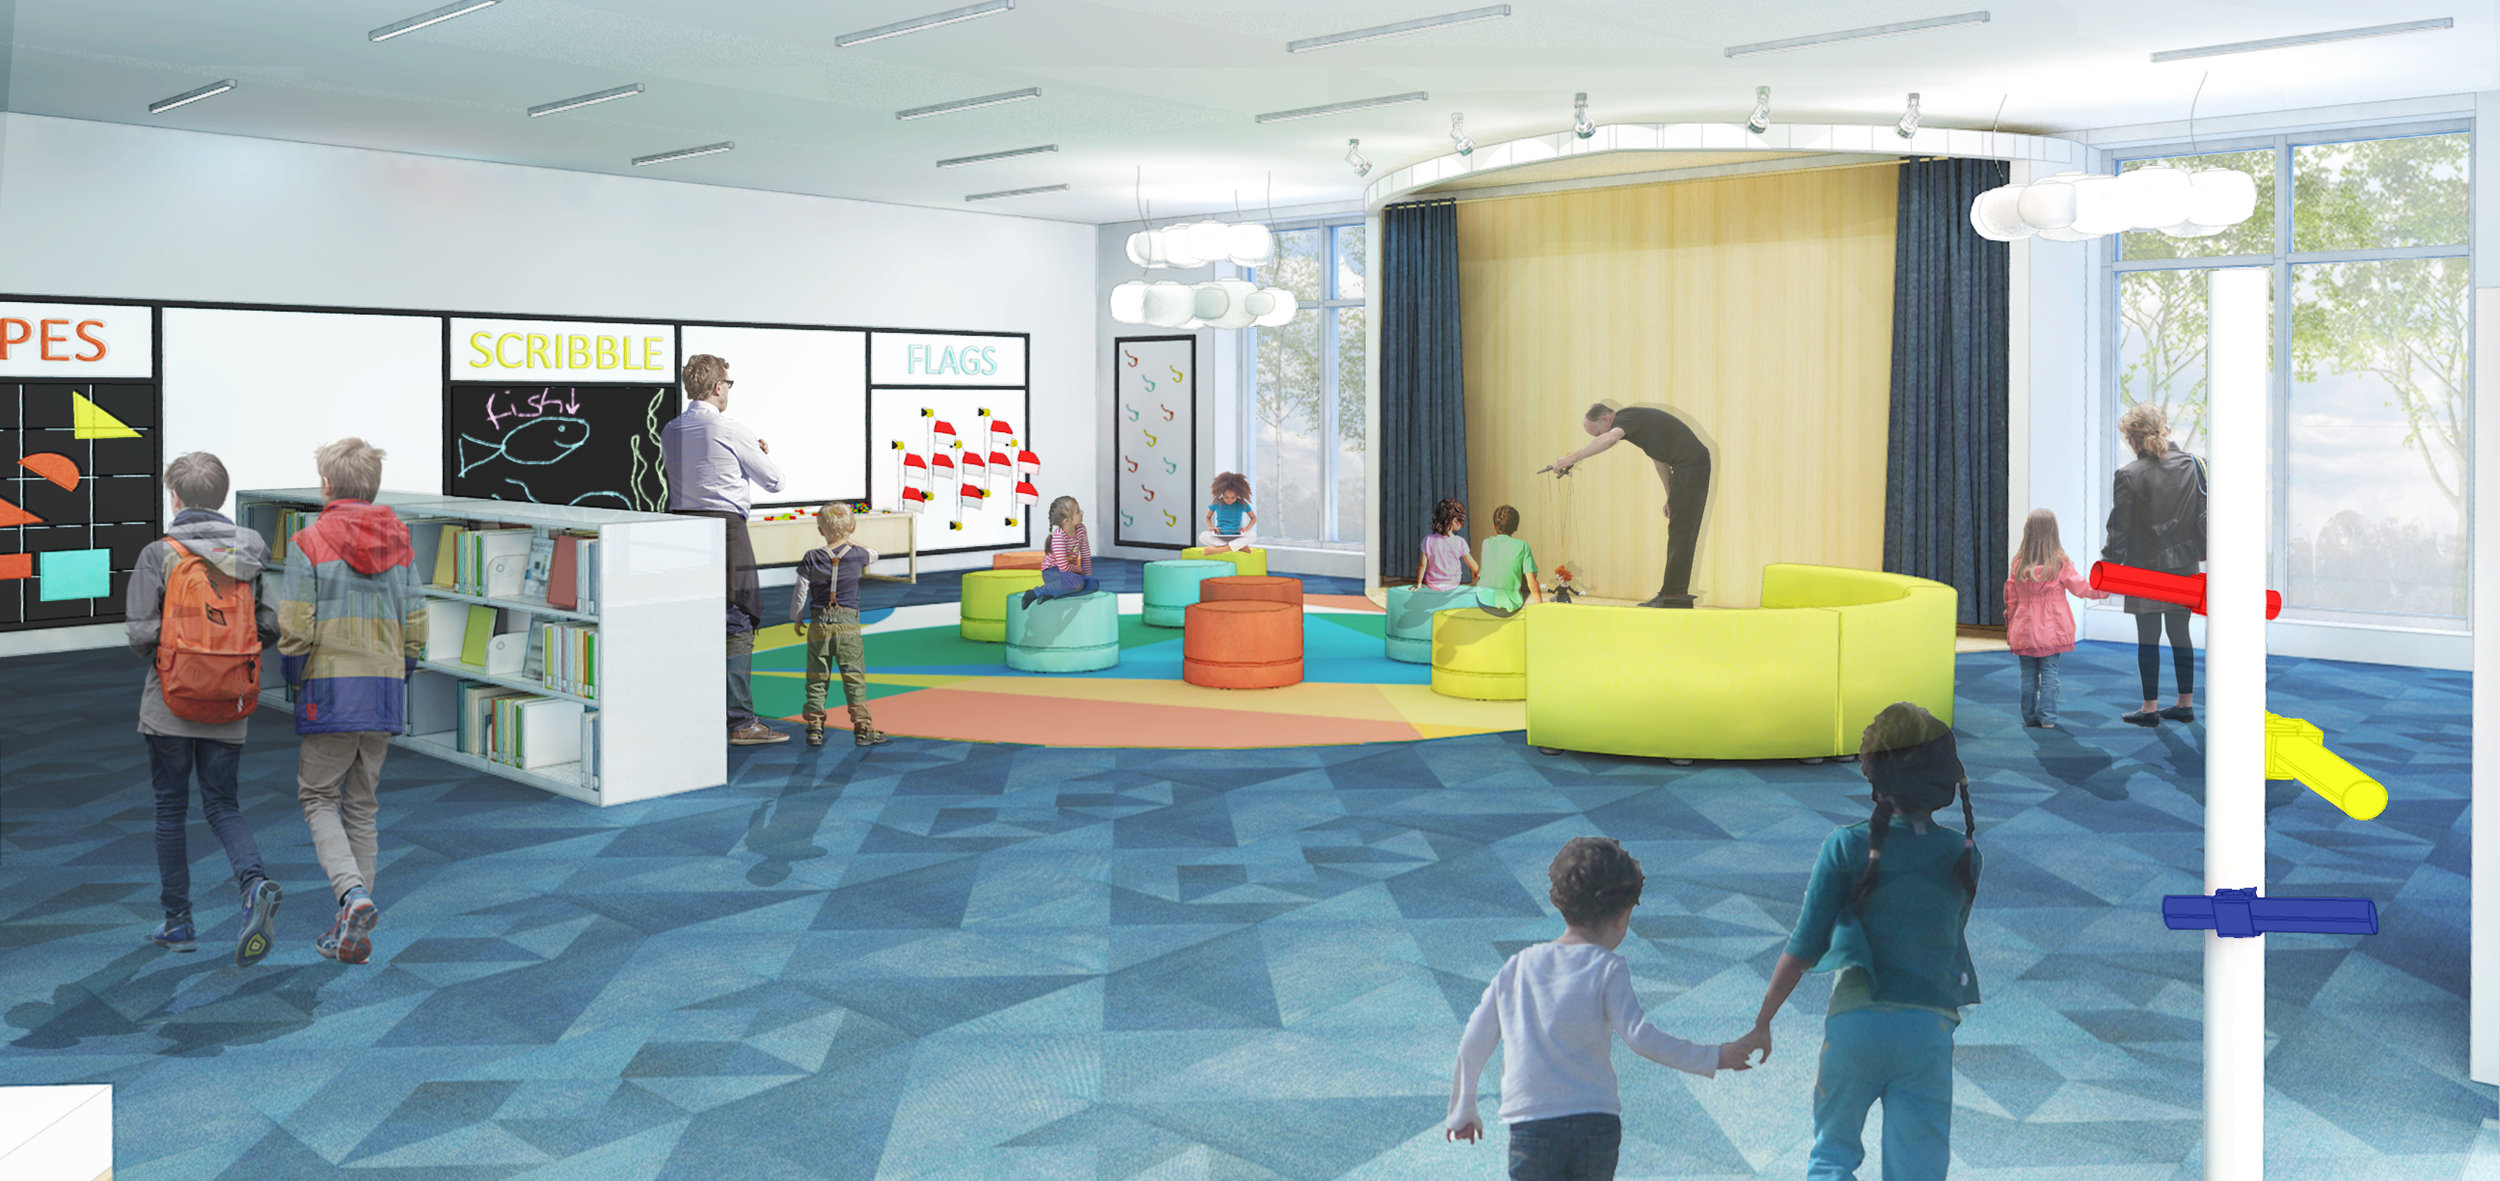 Annapolis Library Rendering_Childrens Area 2.jpg